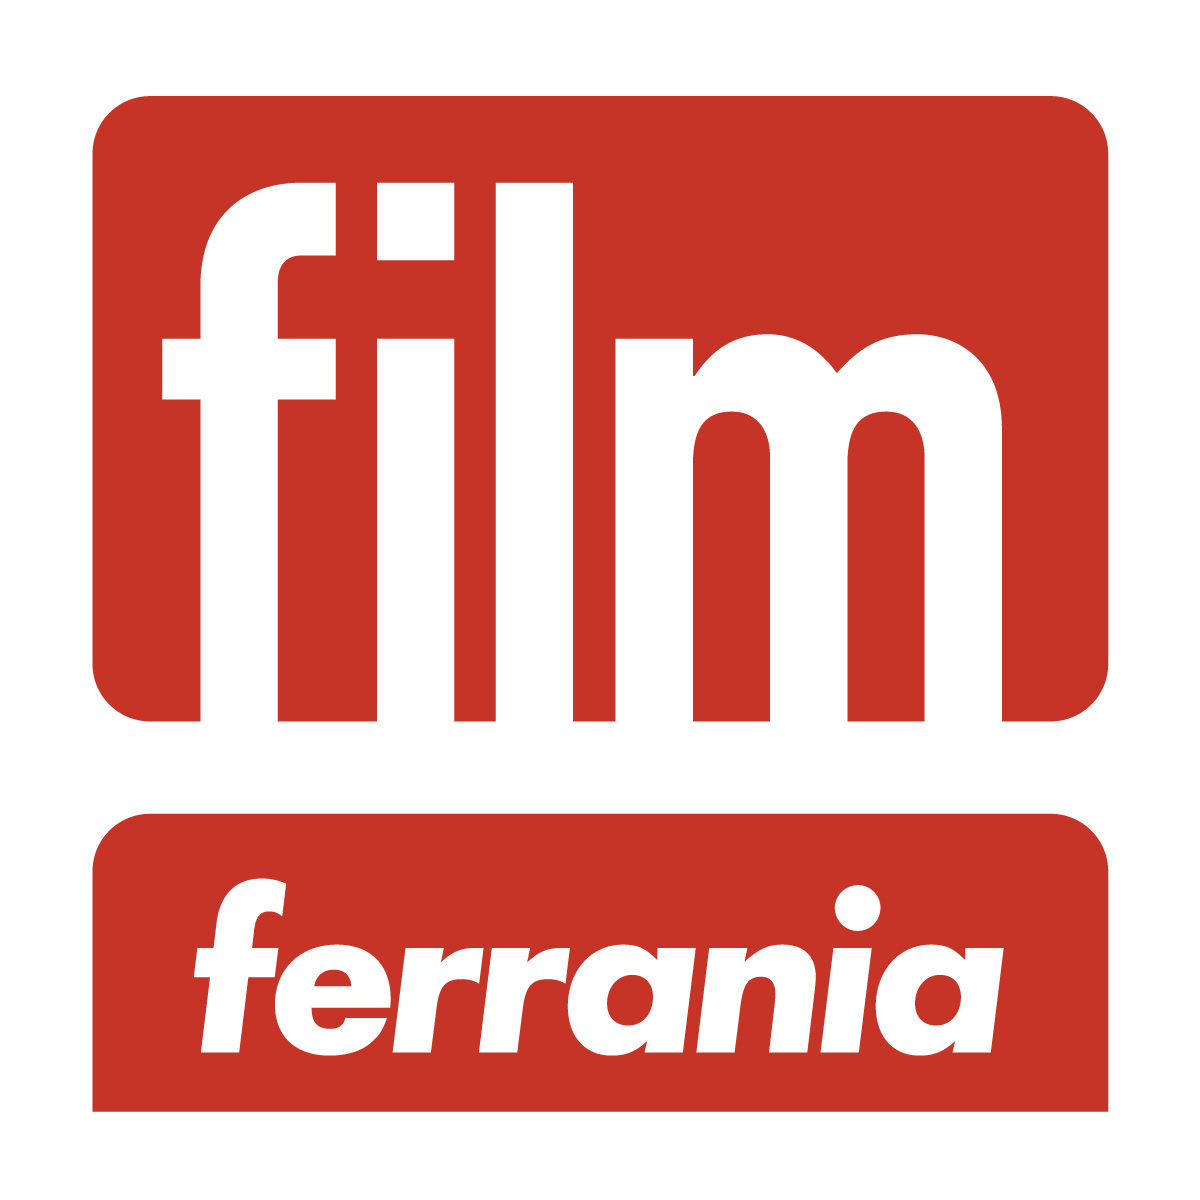 FILM Ferrania logo  JPG, PNG and EPS files in three colors.